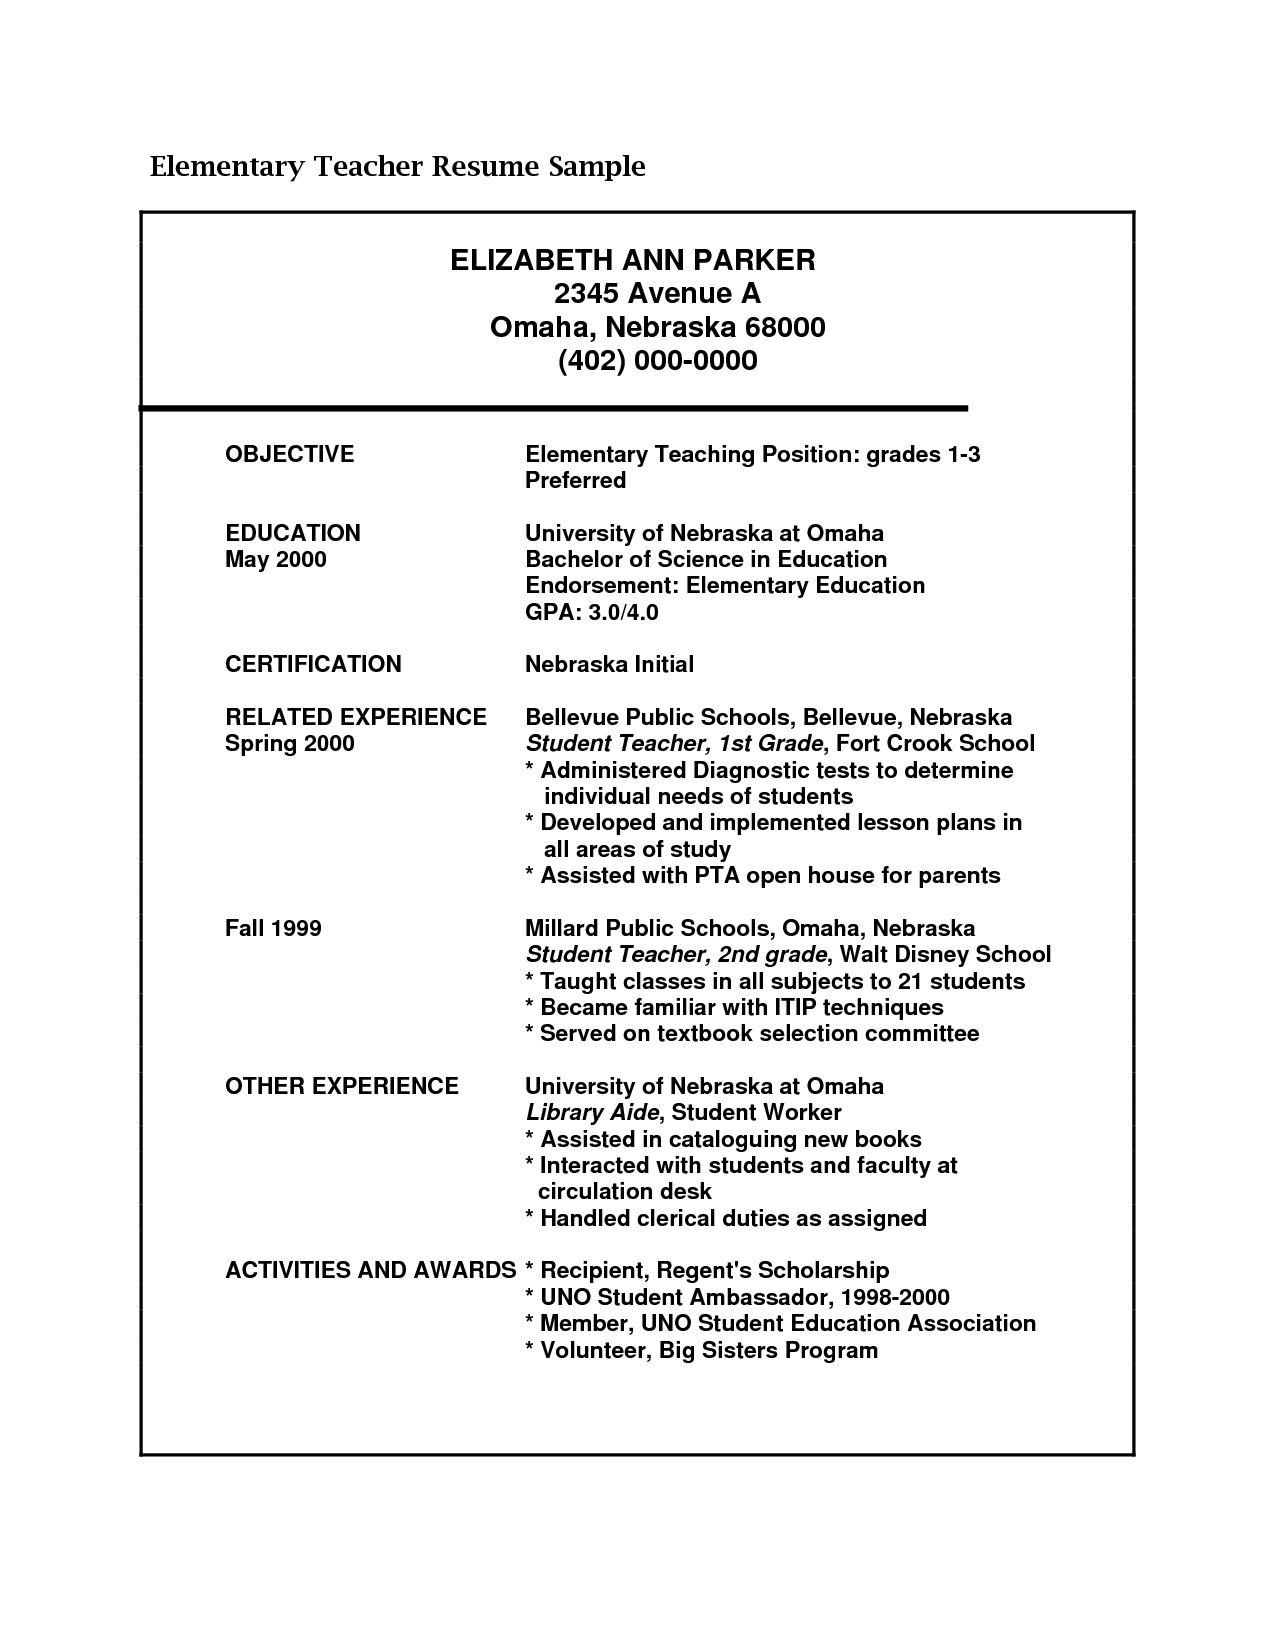 cv for teachers teachers resumes com au teachers cv for teachers teachers professional reacutesumeacutes works education professionals to create dynamic job applications and prepare for interview